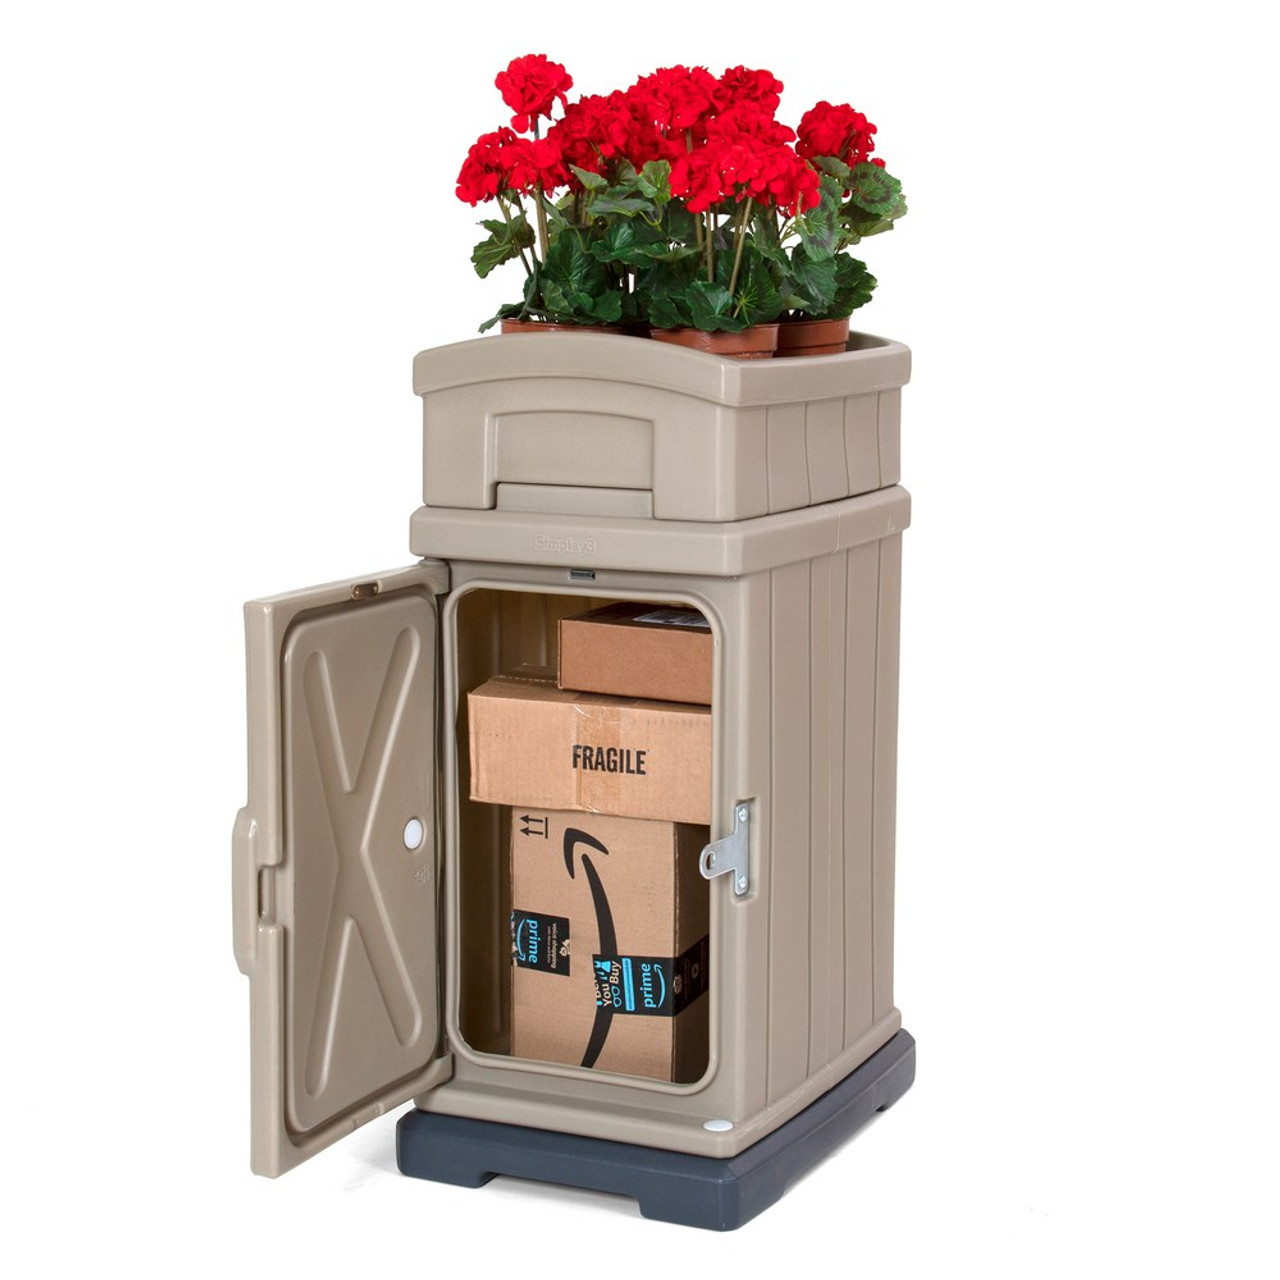 hide away parcel box with planter